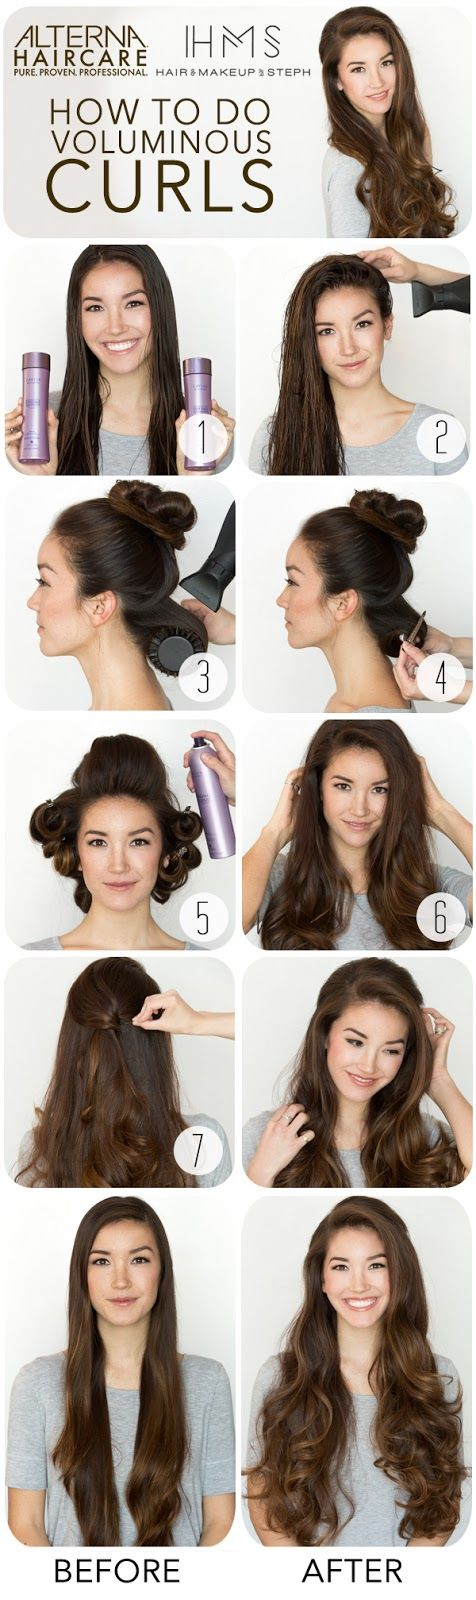 Hair and Make-up by Steph: Voluminous Curls with Alterna